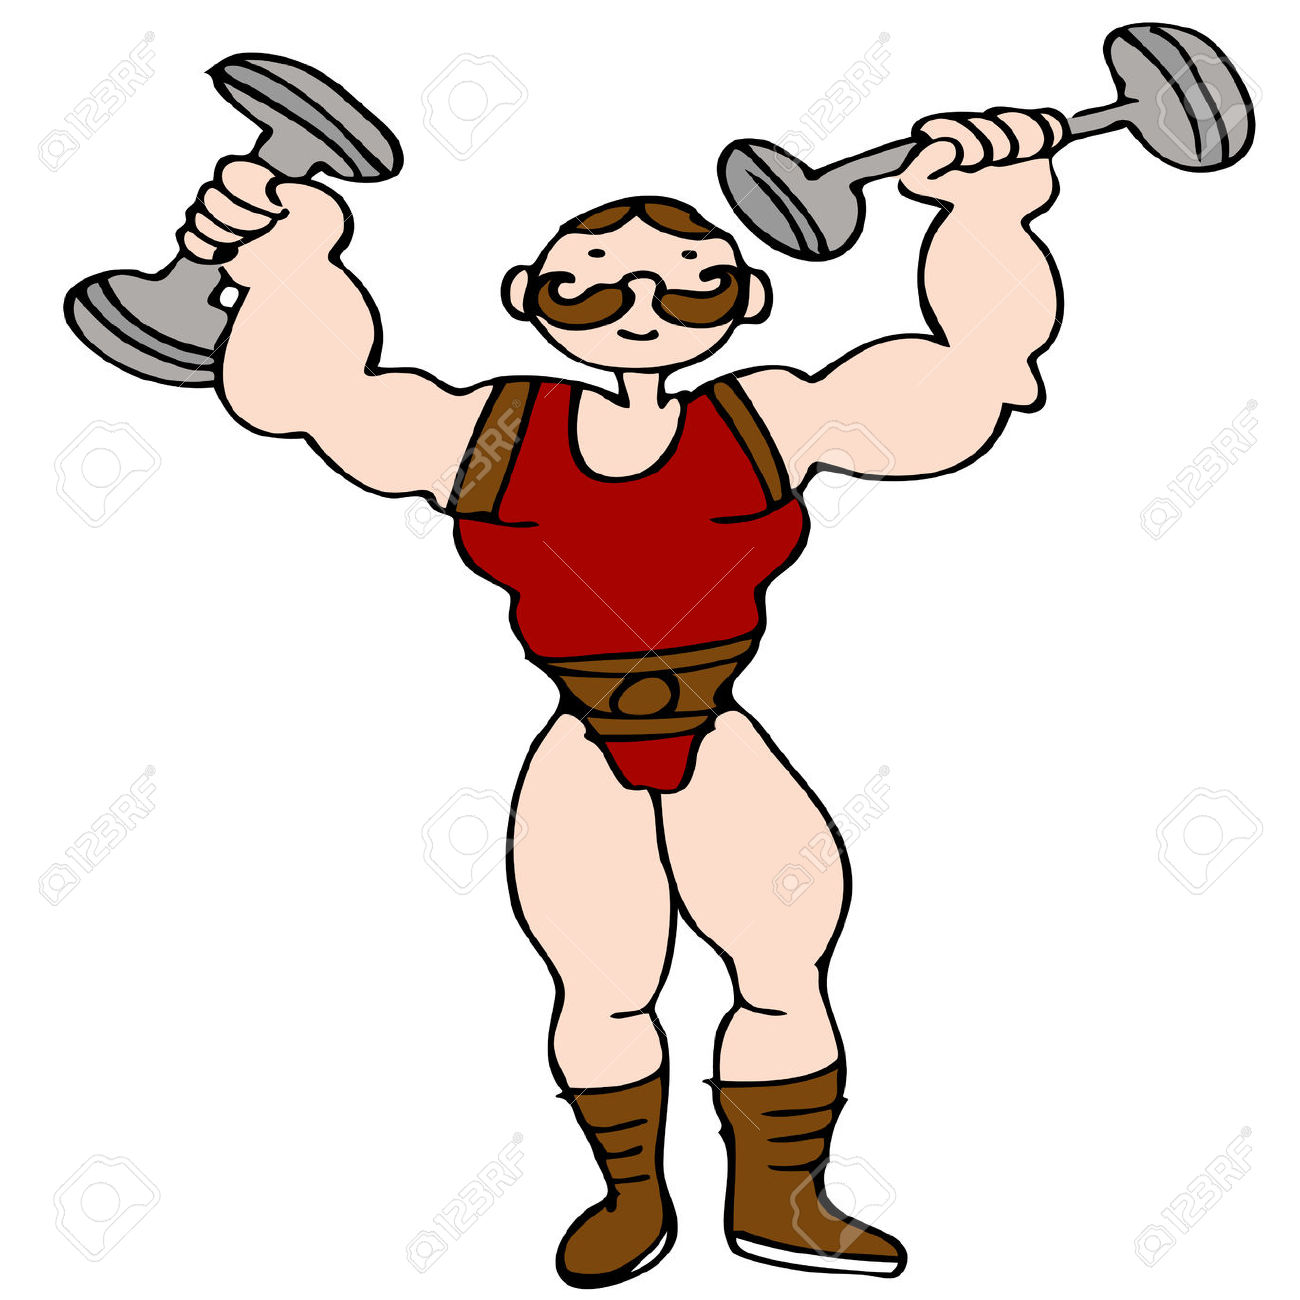 Strong Man Clipart & Strong Man Clip Art Images.